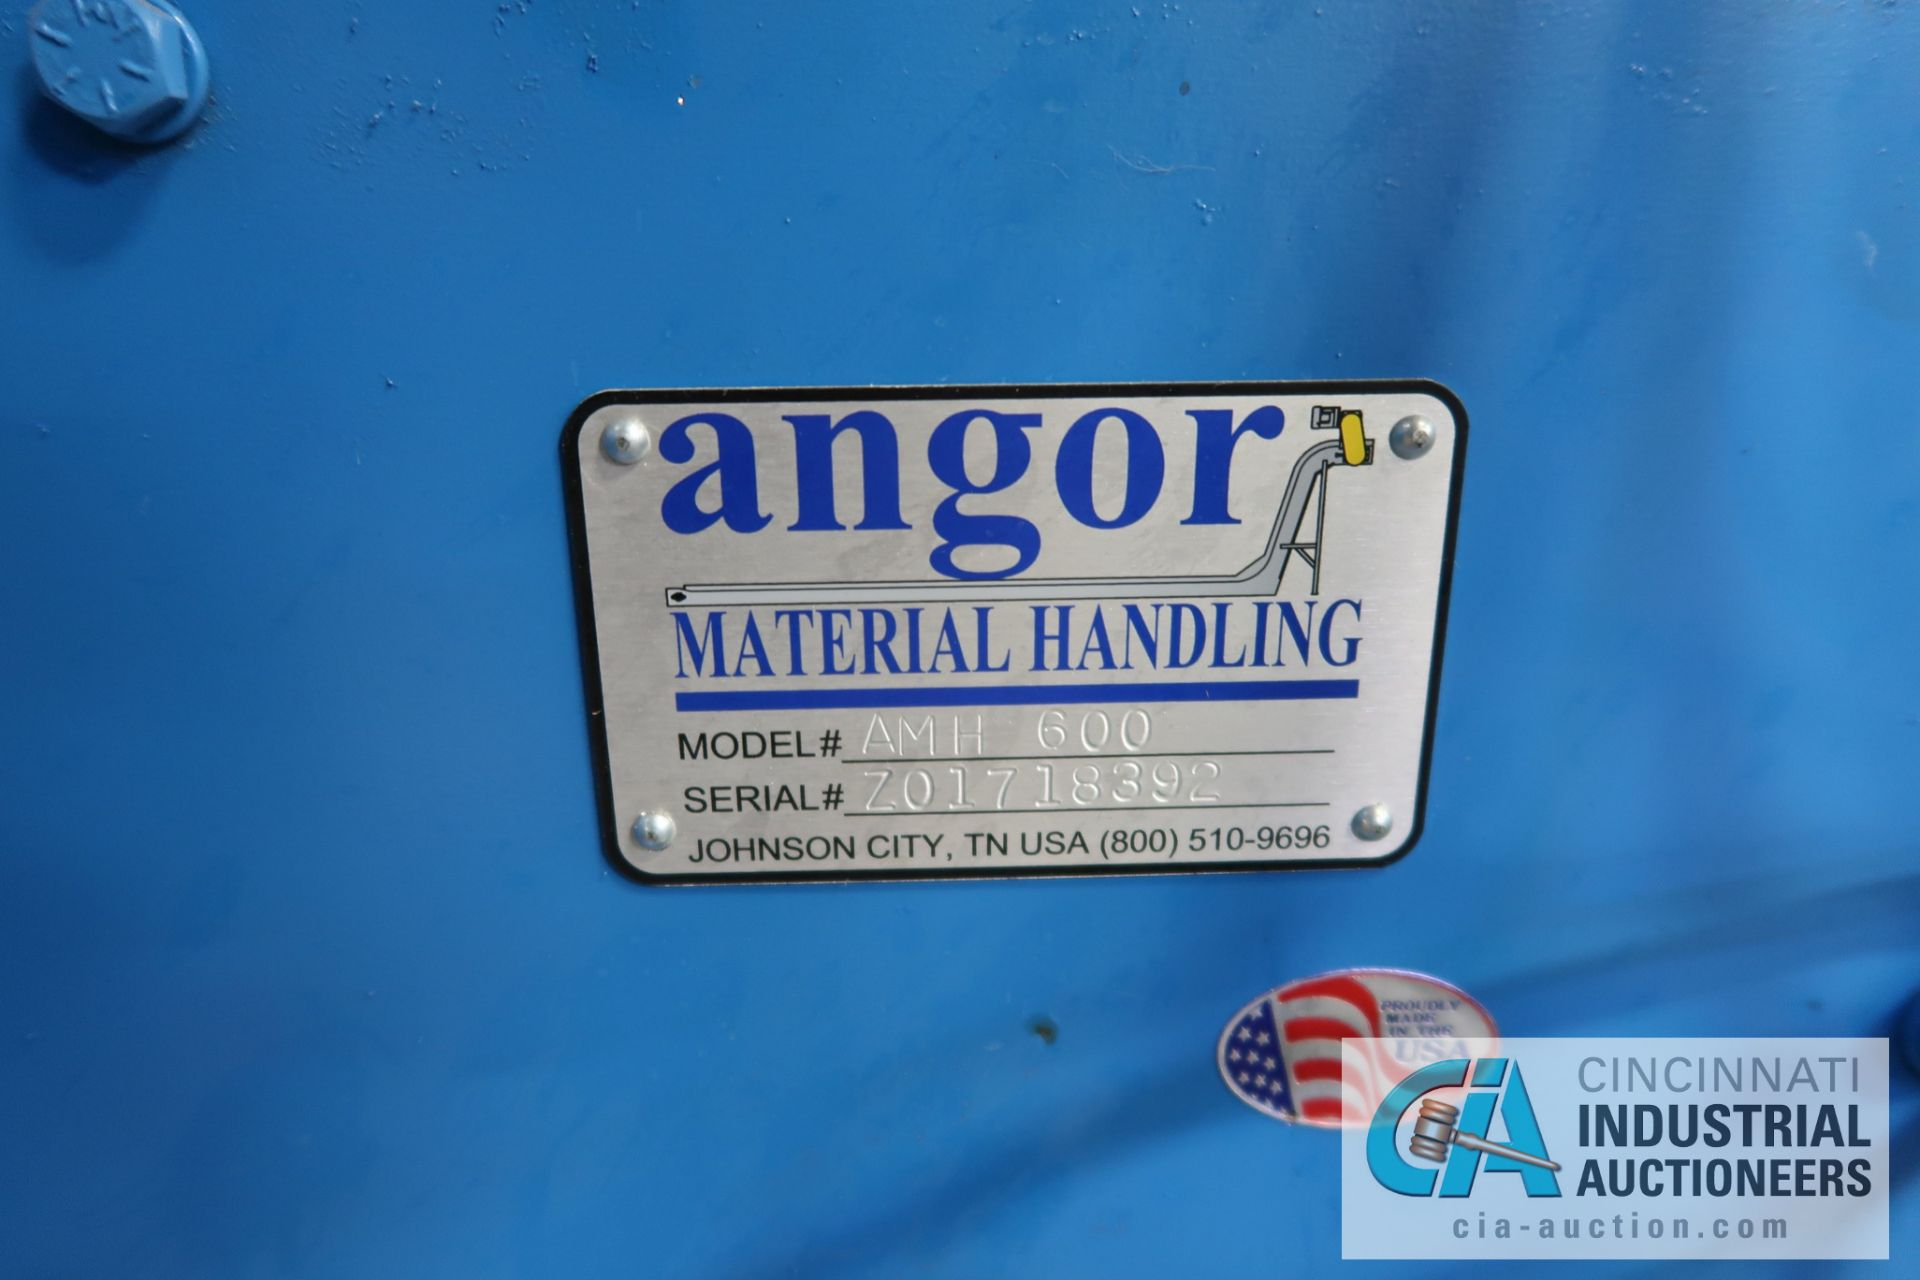 """10"""" X 78"""" ANGOR MODEL AMH600 SERIES BUCKET LOADER; S/N Z01718392, WITH PENTA-DRIVE DC MOTOR SPEED - Image 5 of 5"""